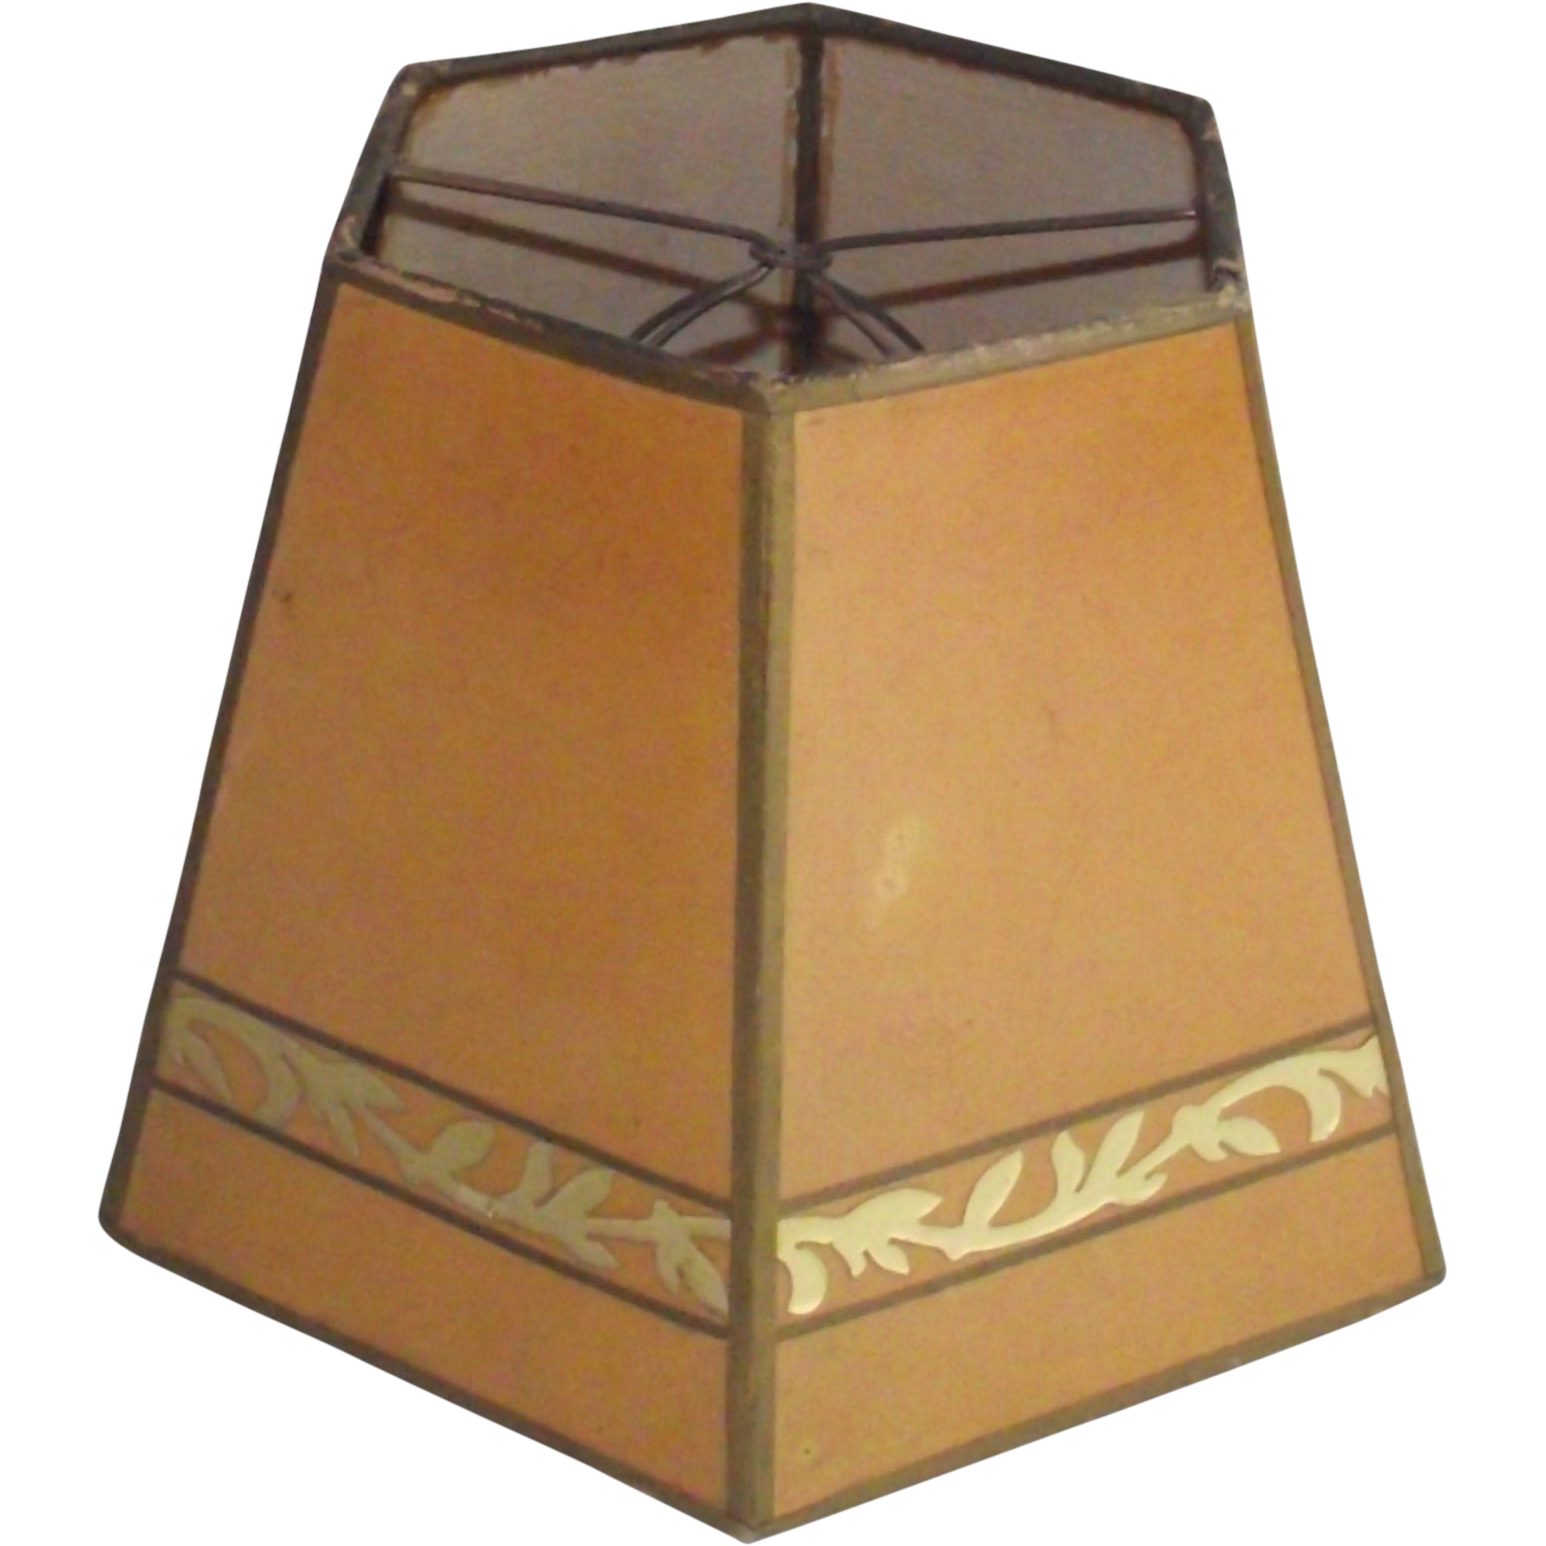 Vintage Parchment Shade with Gold Leaf Decoration for Small Table Lamp